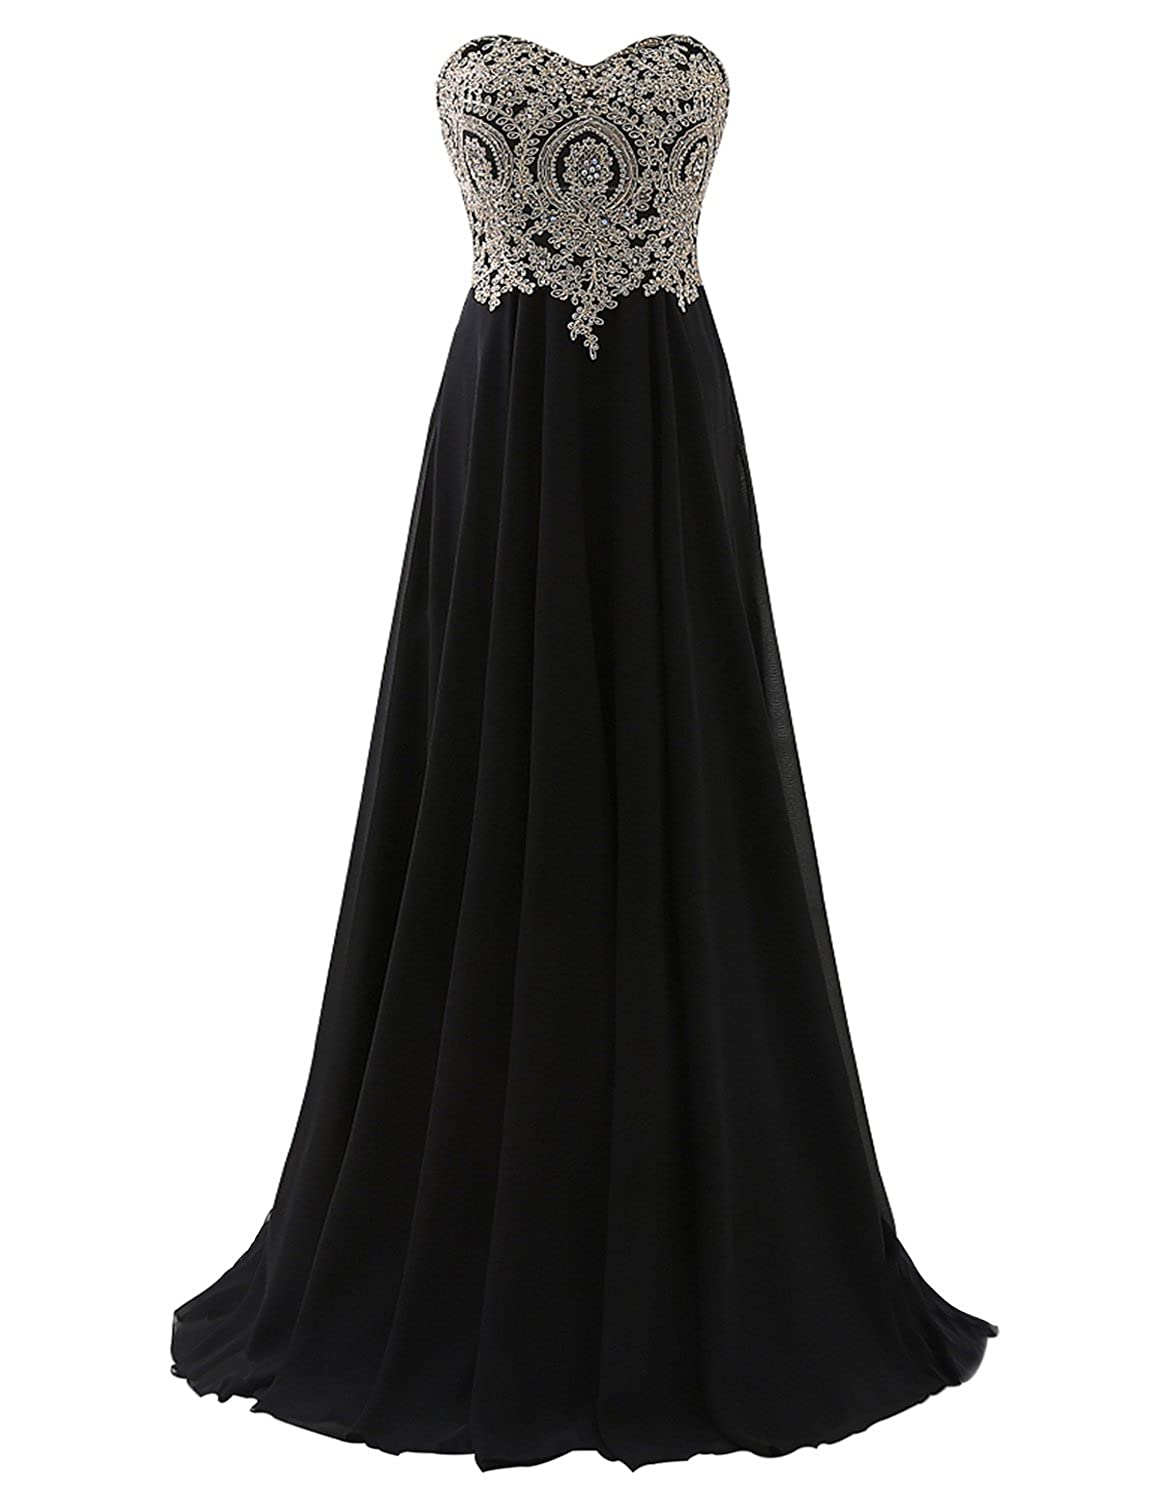 94363f0099d Amazon.com  Erosebridal Sweetheart Prom Dress with Gold Embroidery Chiffon  Bridesmaid Party Gowns  Clothing